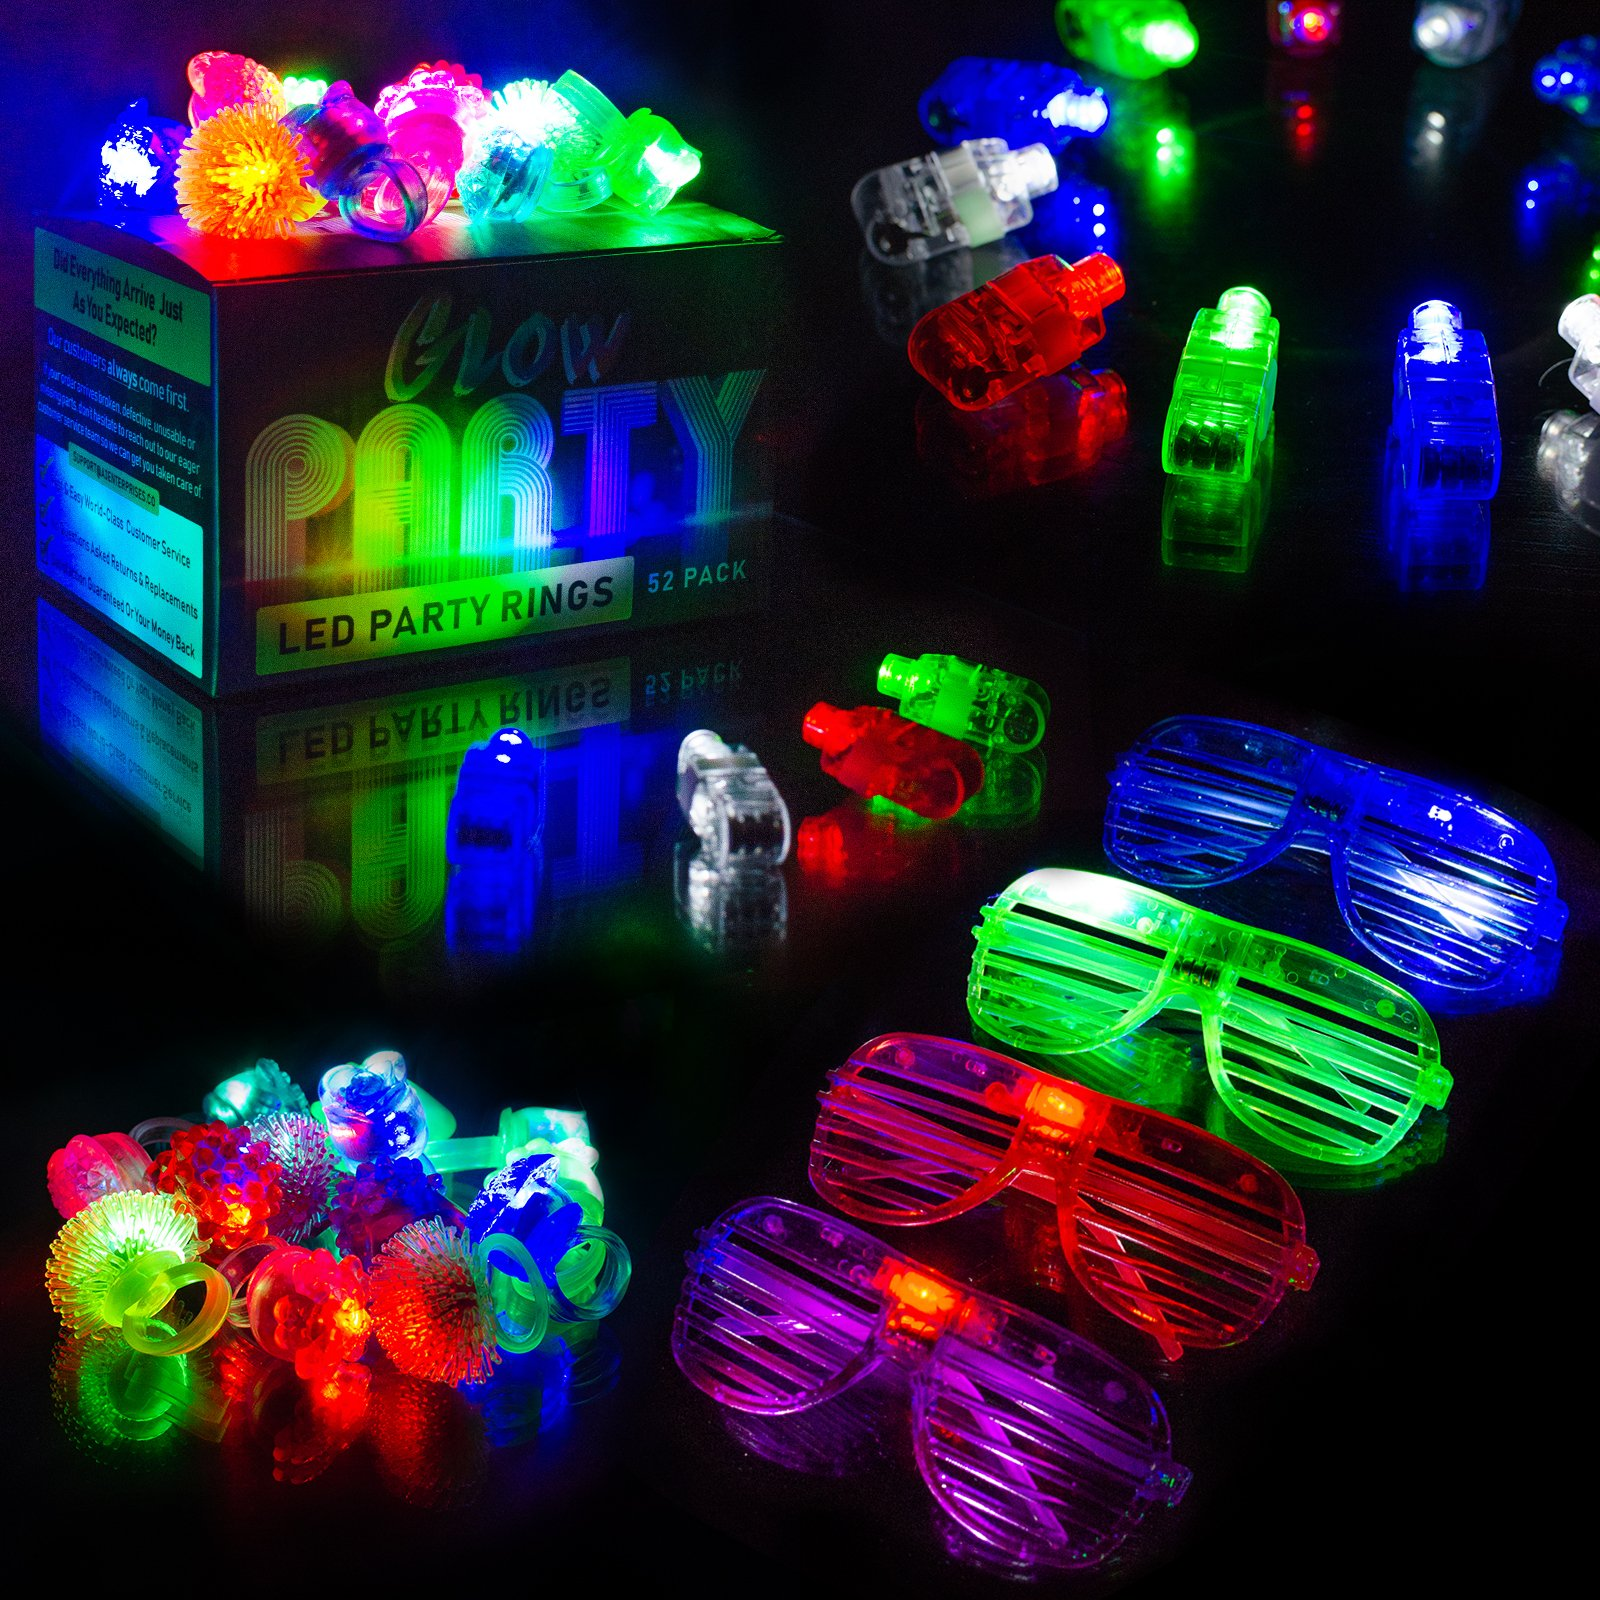 LED Kids Party Favors - 52 Neon Glow in The Dark Parties Supplies for Goody Bags - 5 LED Glasses, 13 Bumpy Jelly Glow Rings. 34 Finger Flashing Rings - Bulk Light up Toys in Assorted Colors